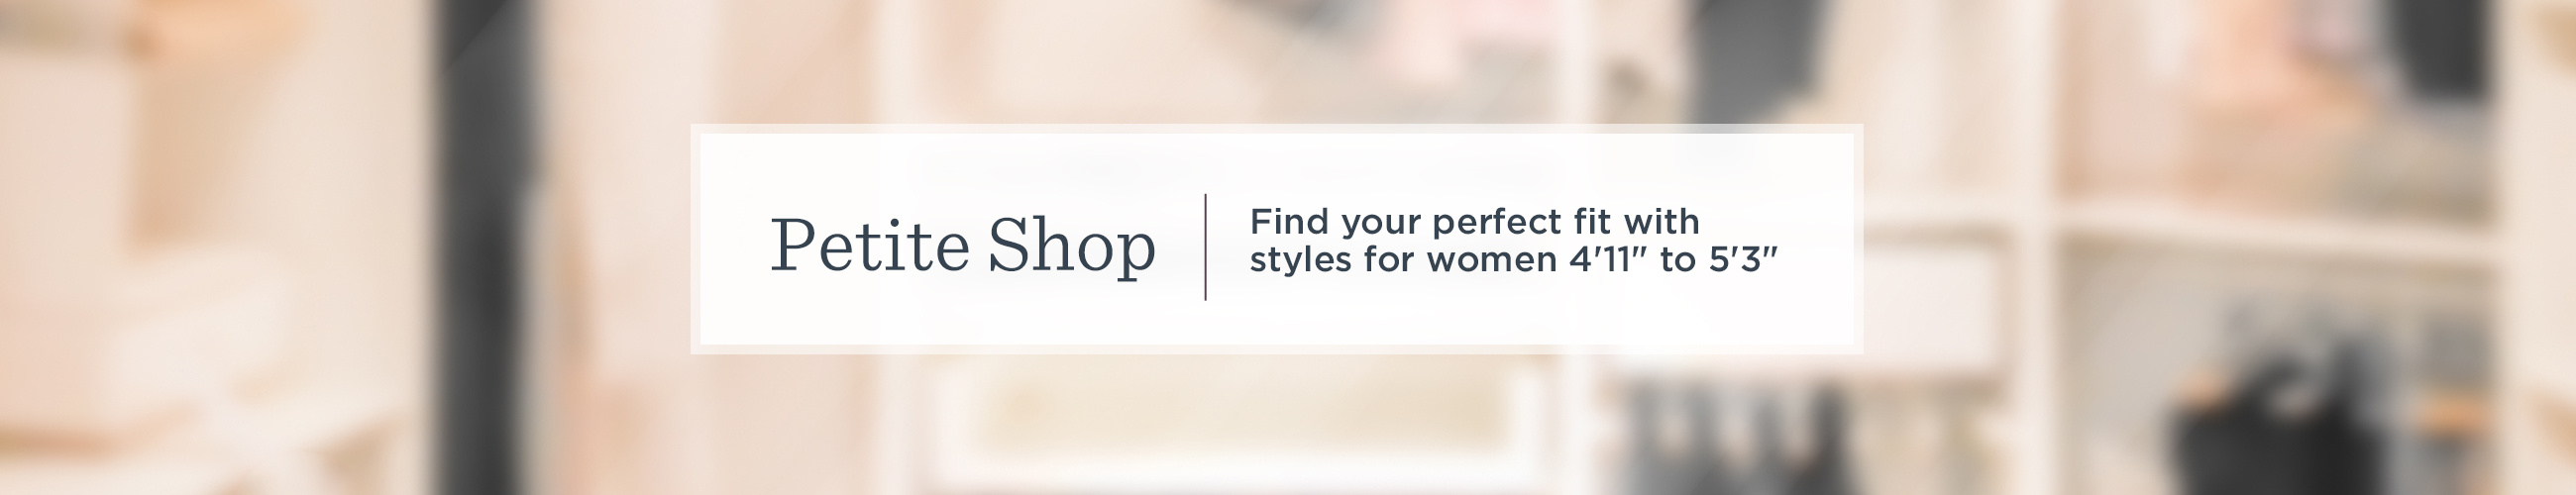 "Petite Shop Find your perfect fit with styles for women 4'11"" to 5'3"""